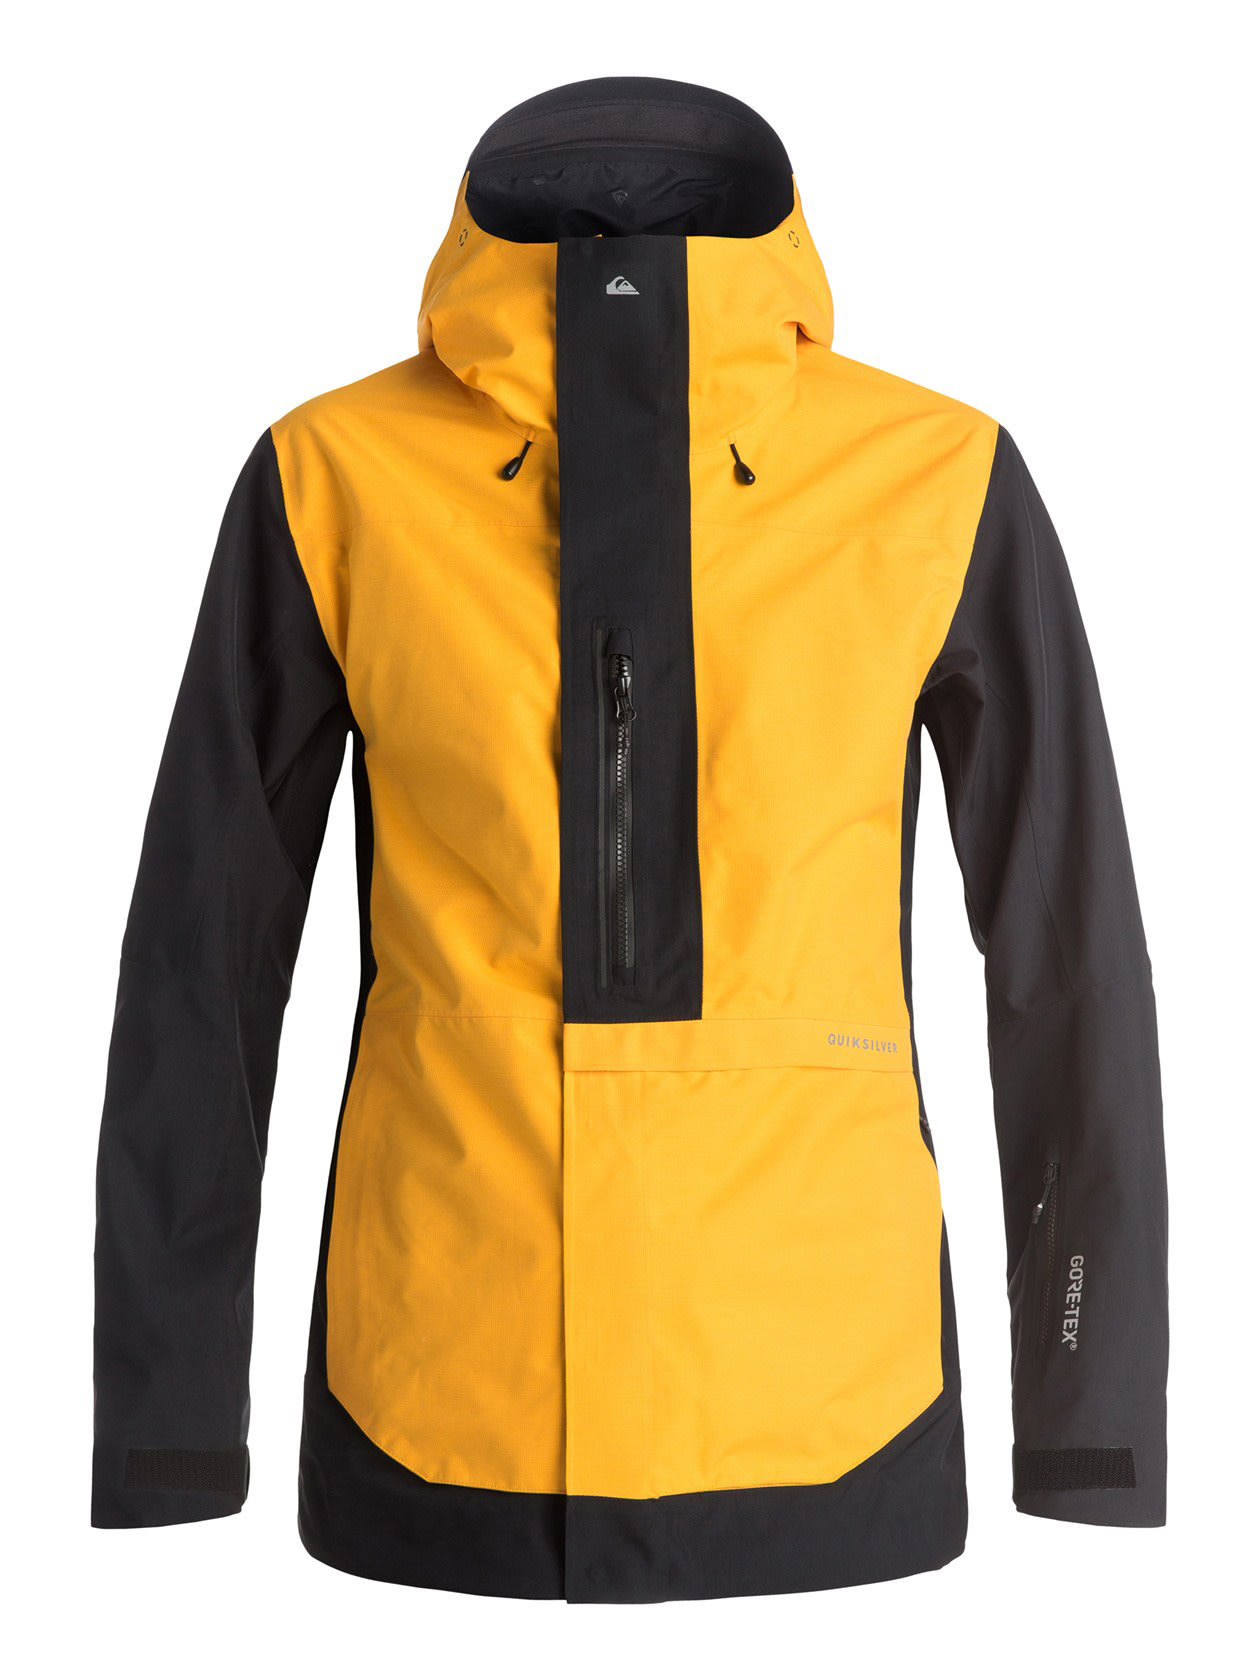 on sale quiksilver tr exhibition 2l gore tex snowboard jacket up to 40 off. Black Bedroom Furniture Sets. Home Design Ideas